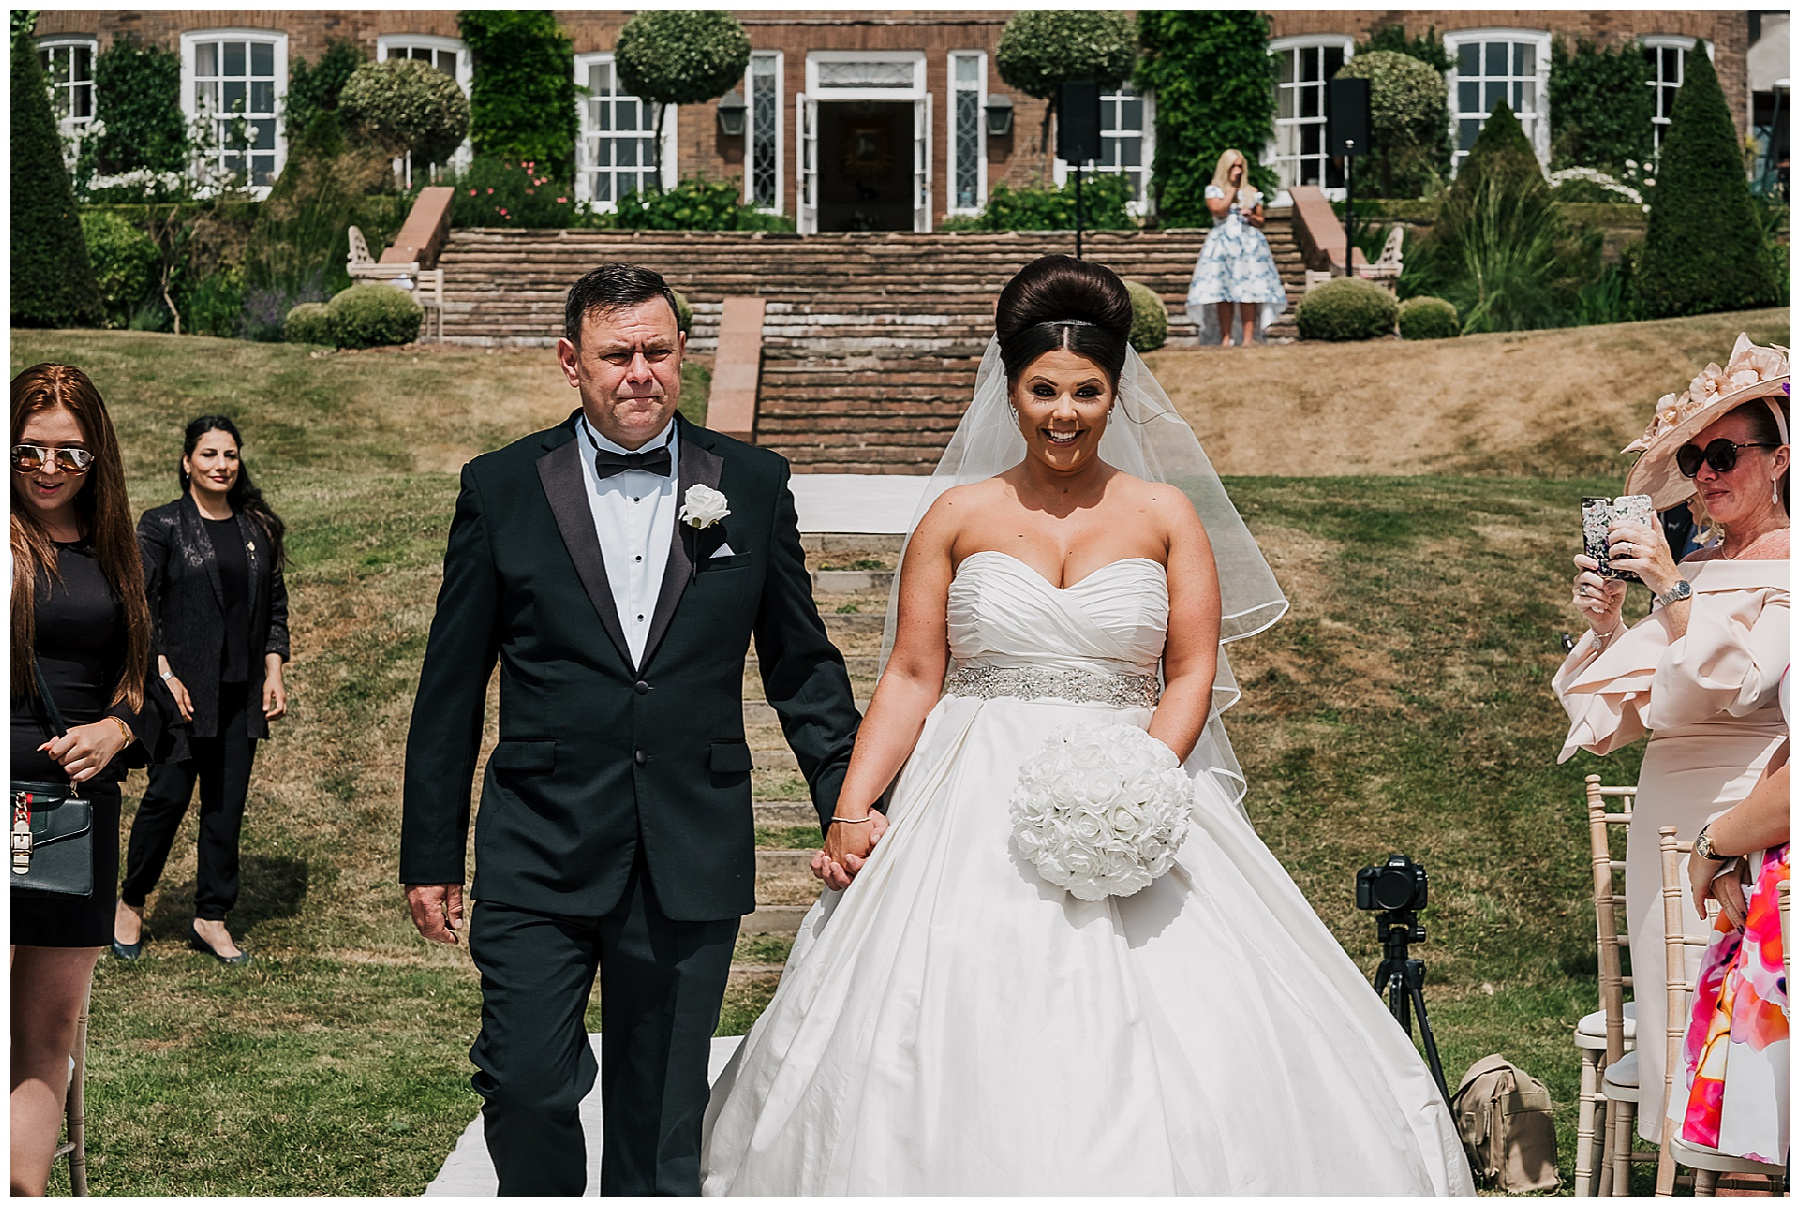 A Dreamy Summer Wedding at Delamere Manor